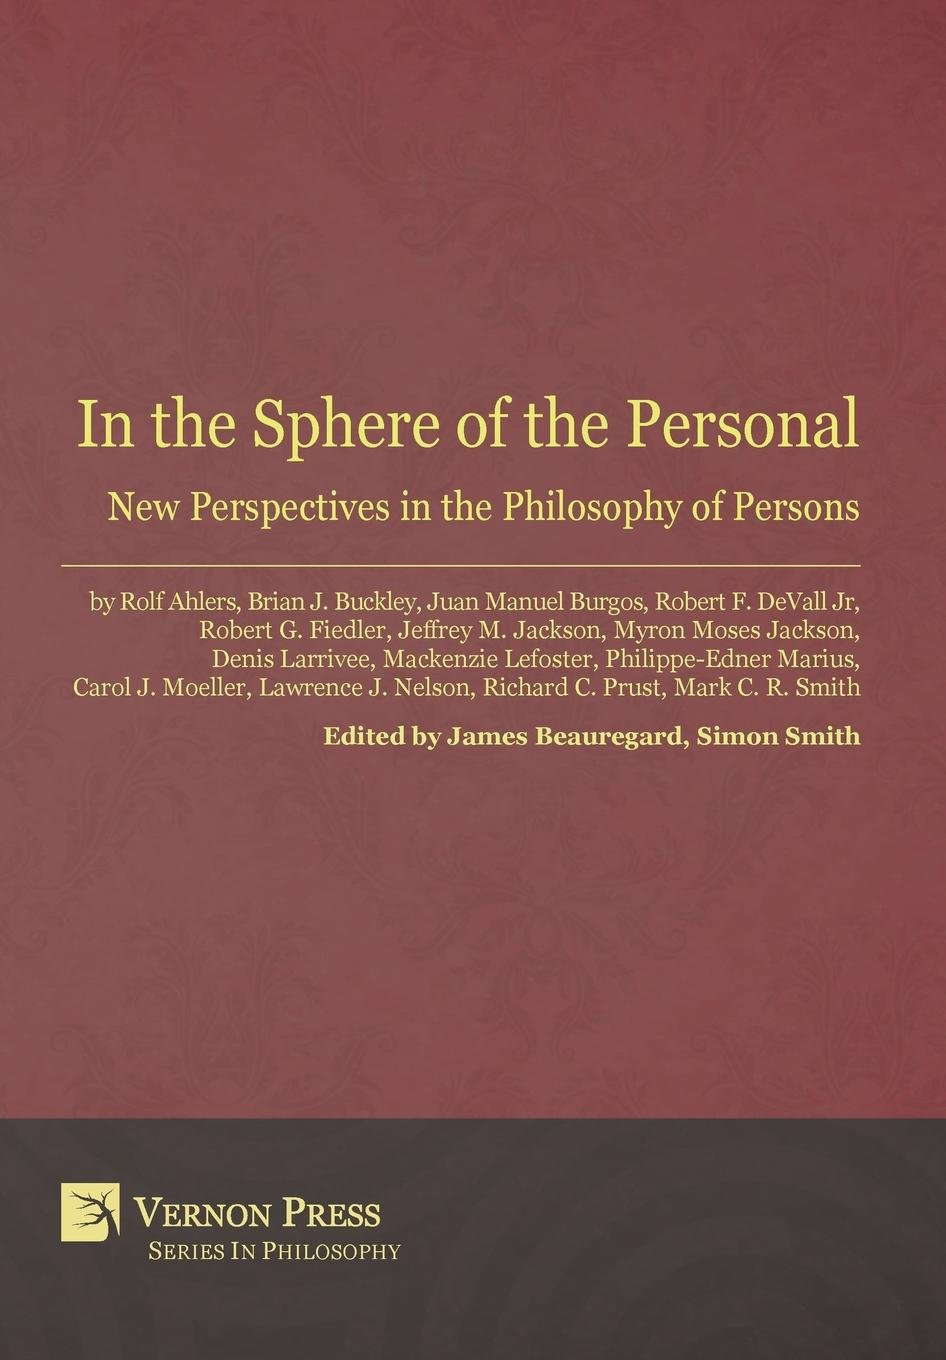 Download In the Sphere of the Personal: New Perspectives in the Philosophy of Persons (Vernon Series in Philosophy) pdf